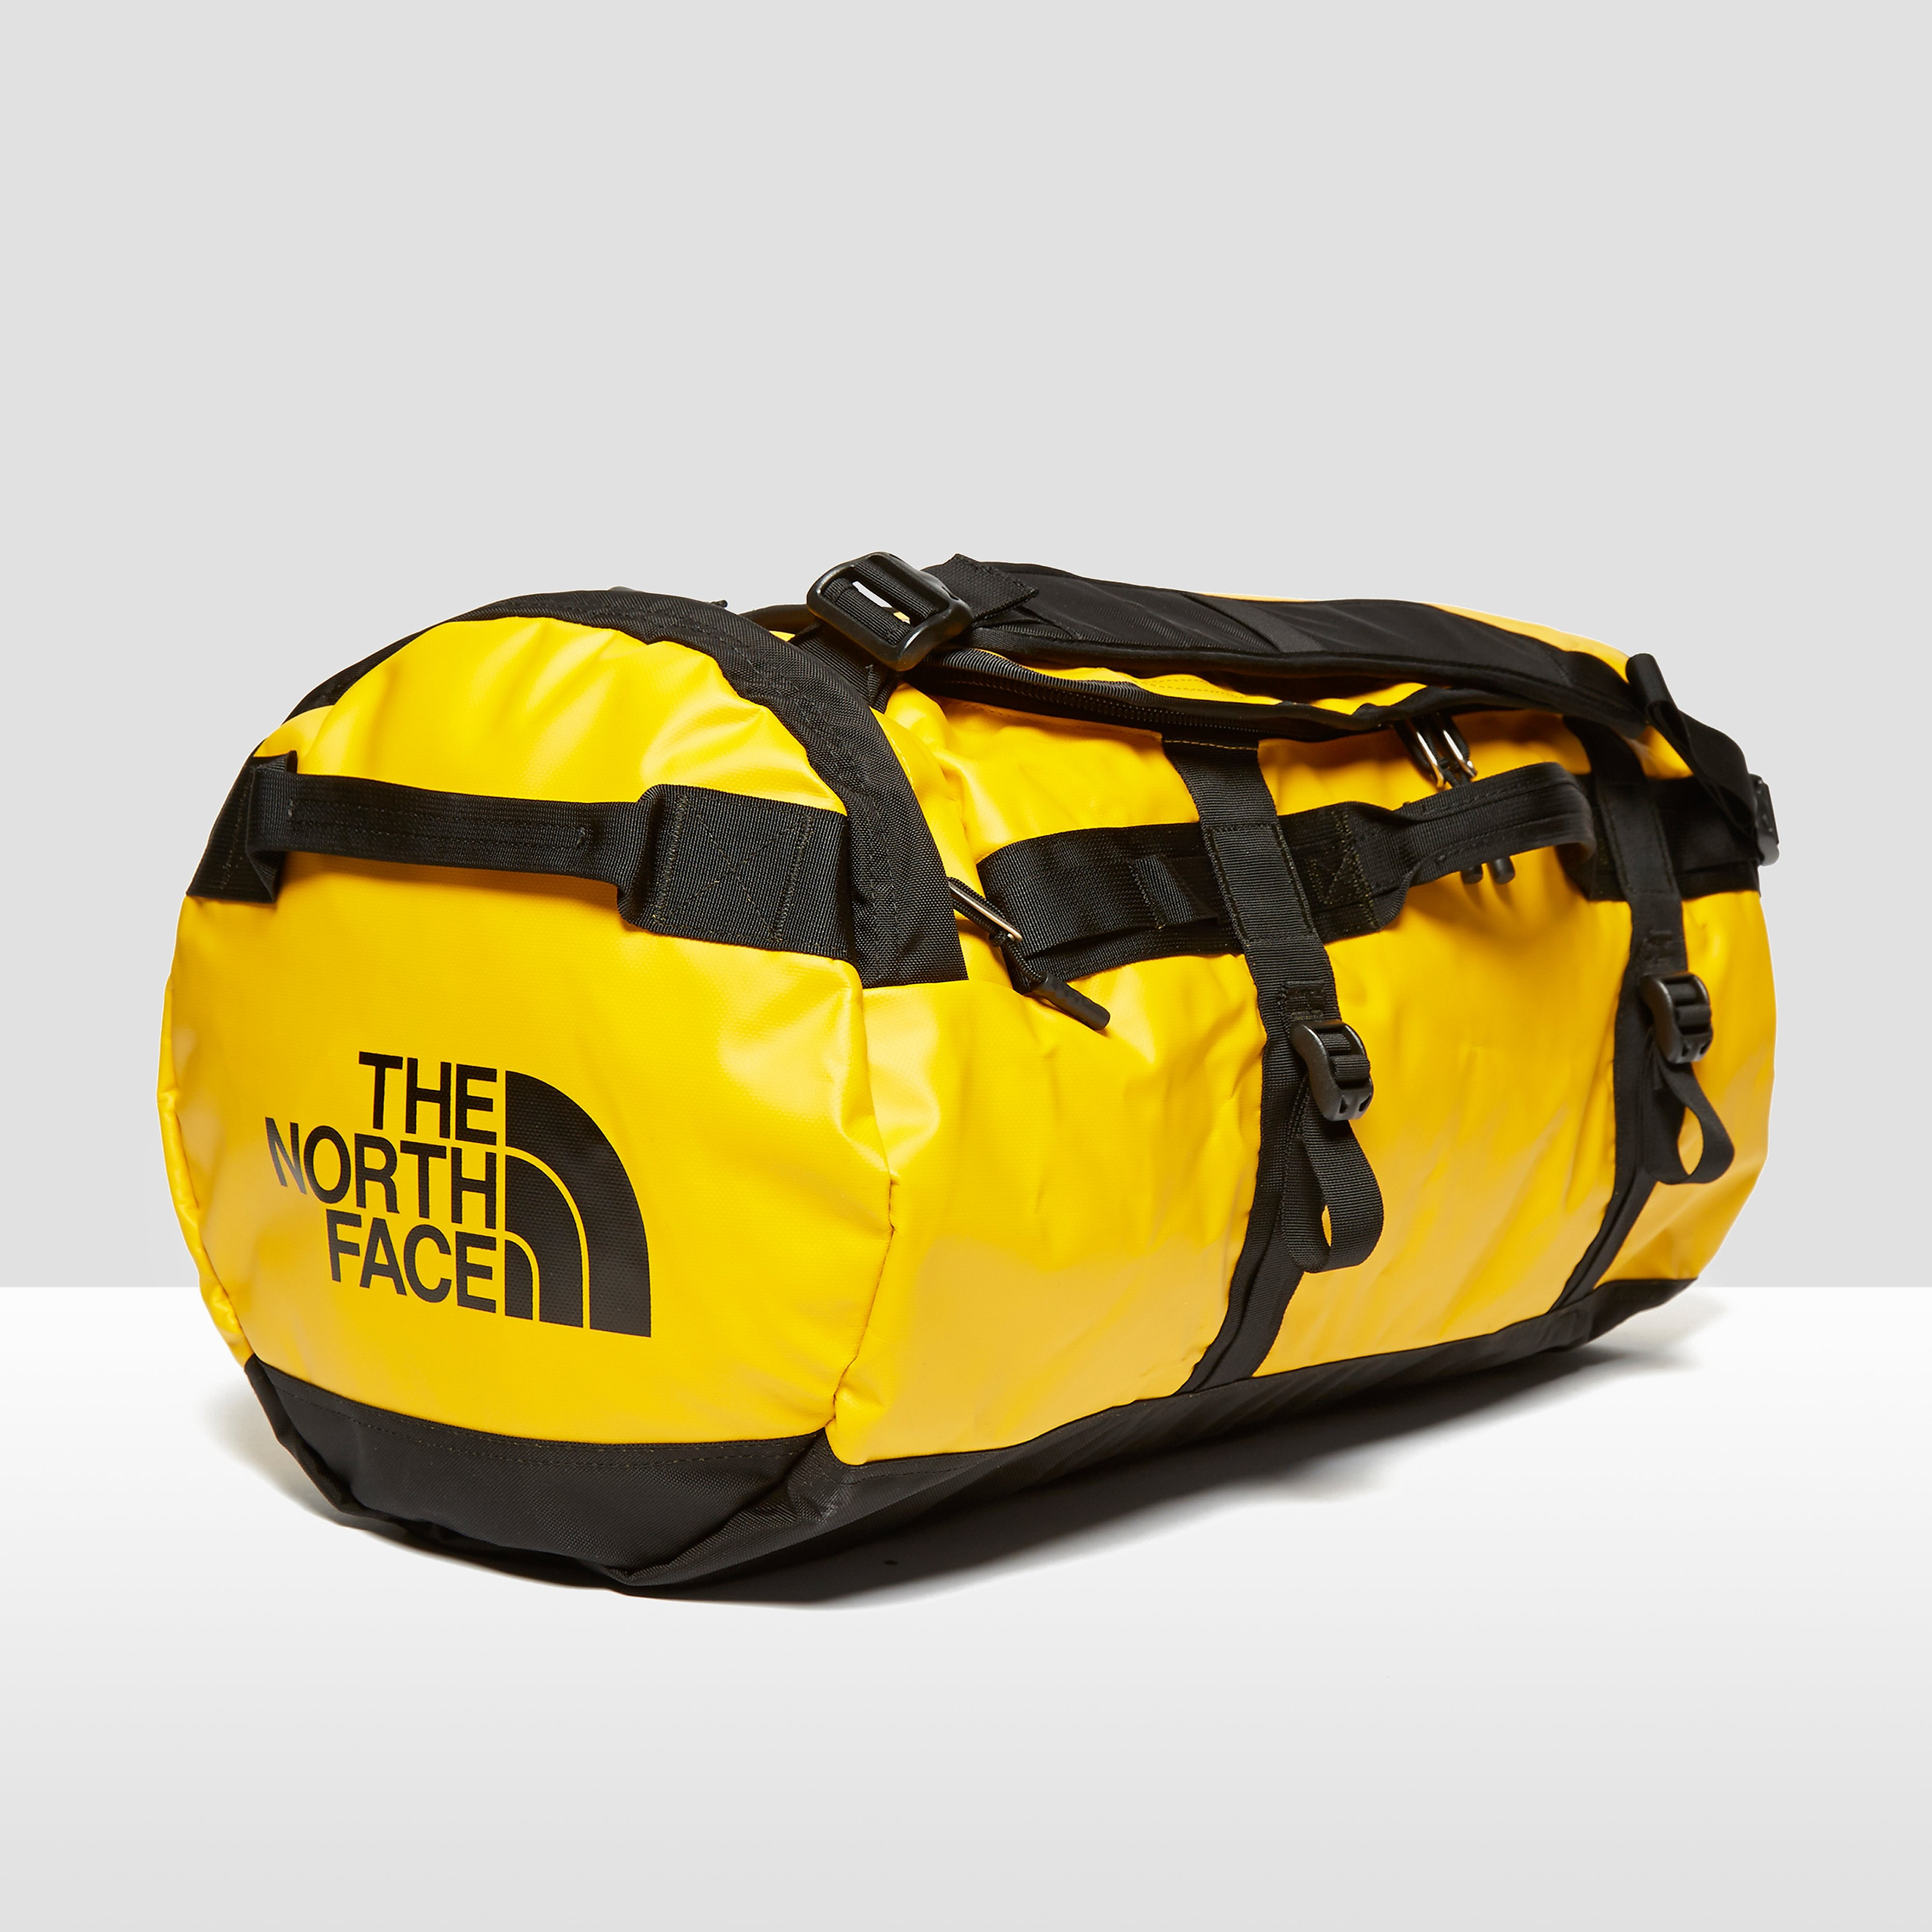 The North Face Large Duffel Bag